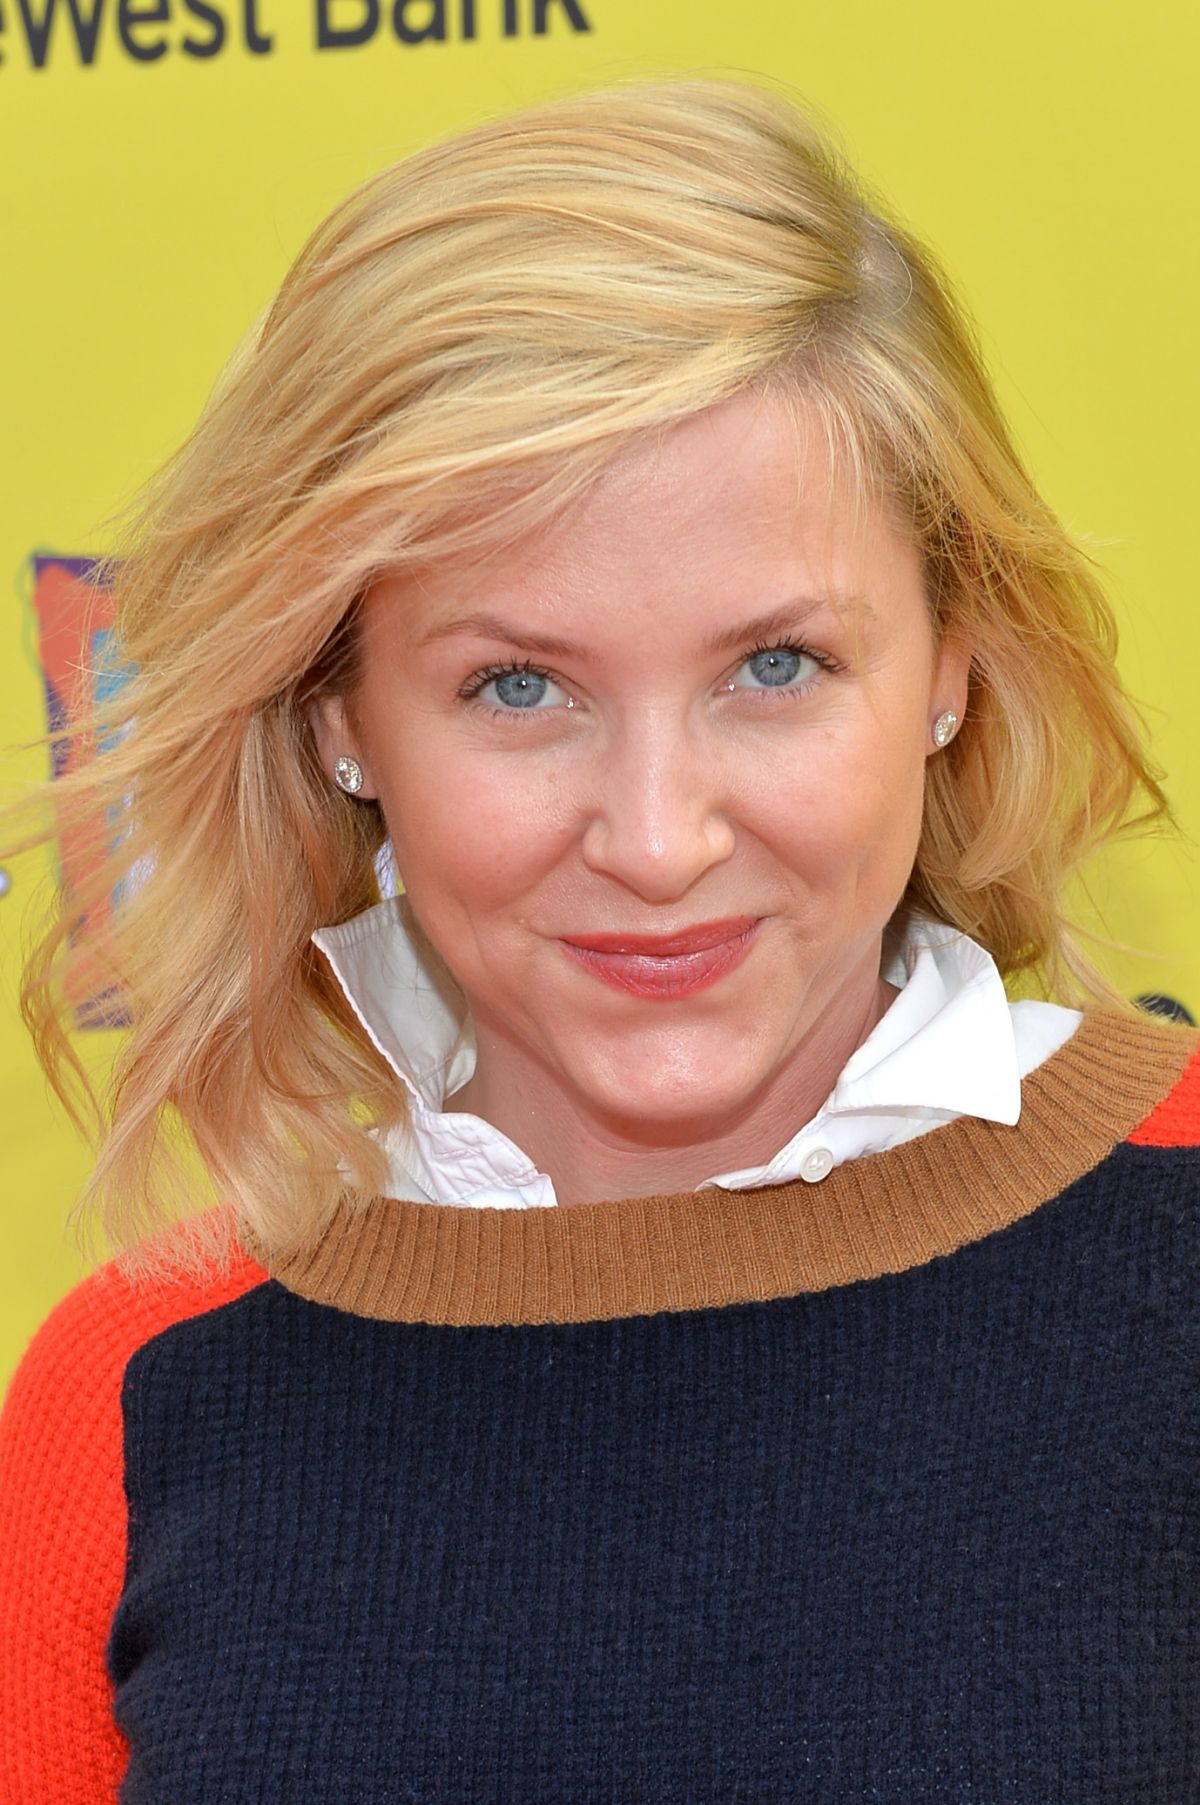 Jessica Capshaw At The P.S. Arts Express Yourself 2013 In Santa Monica